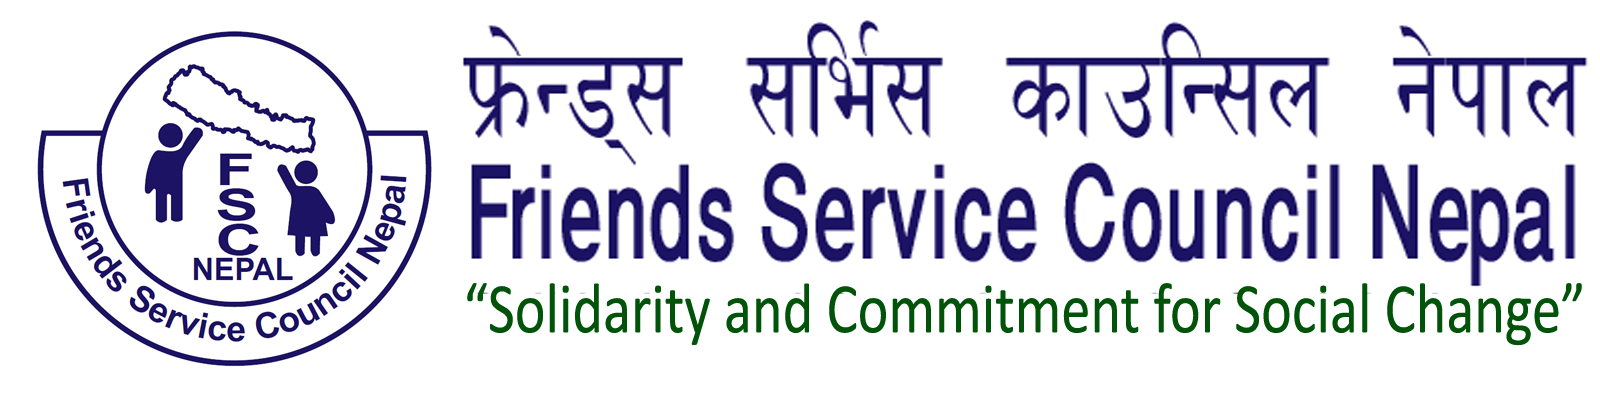 Friends Service Council Nepal